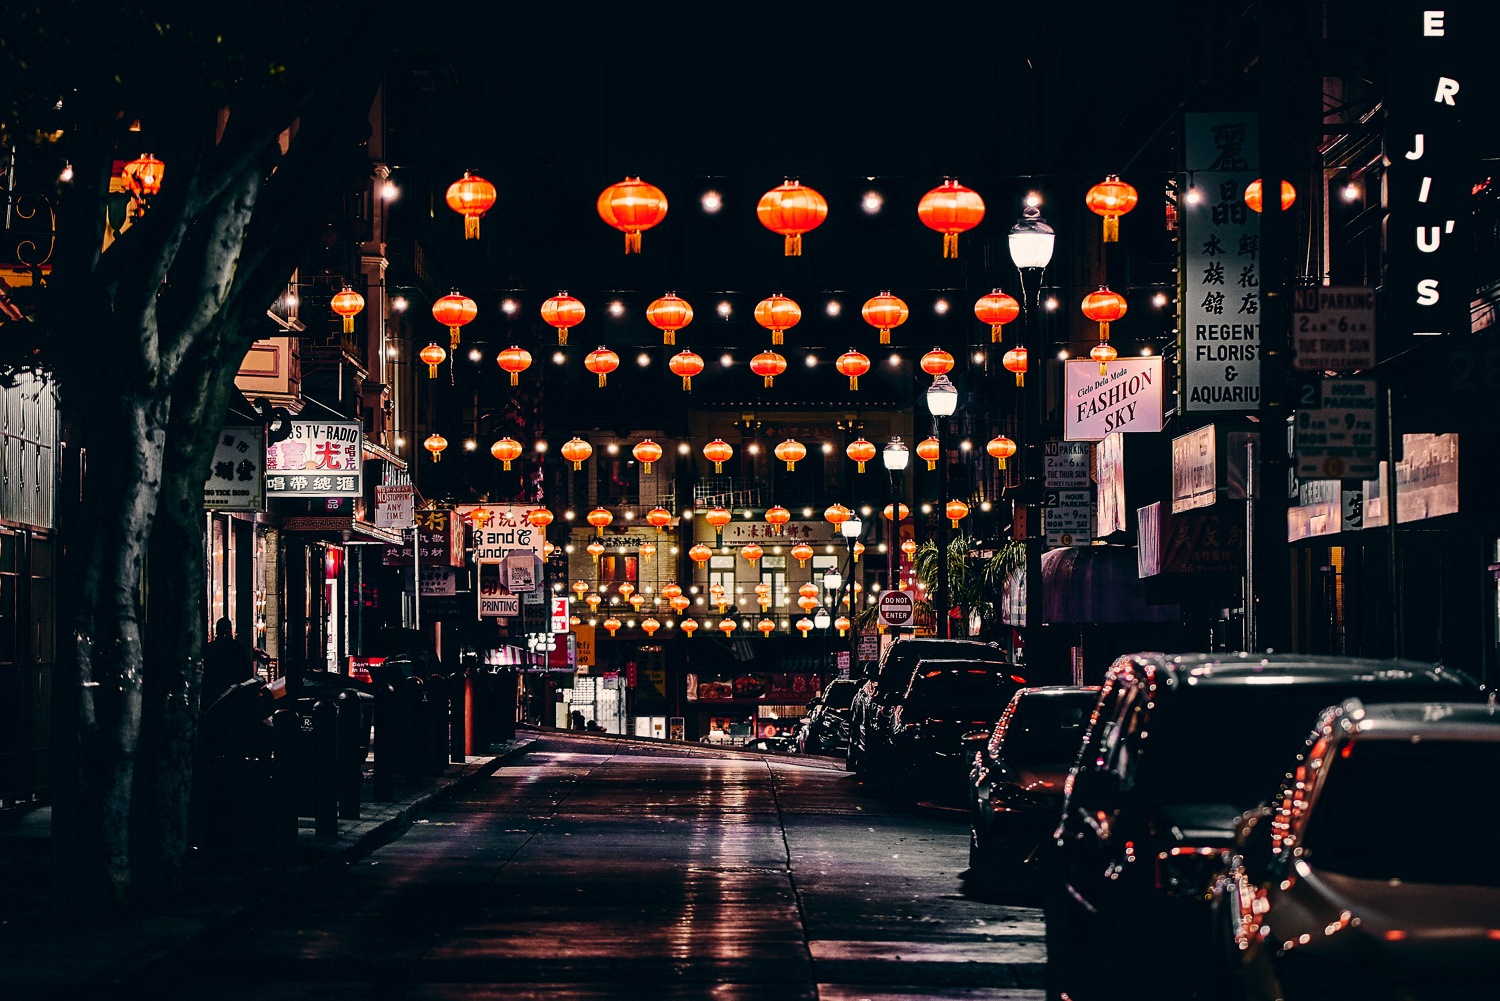 Advanced Night Photography Workshop 2020. Mill Valley. Marin County. Chinatown San Francisco